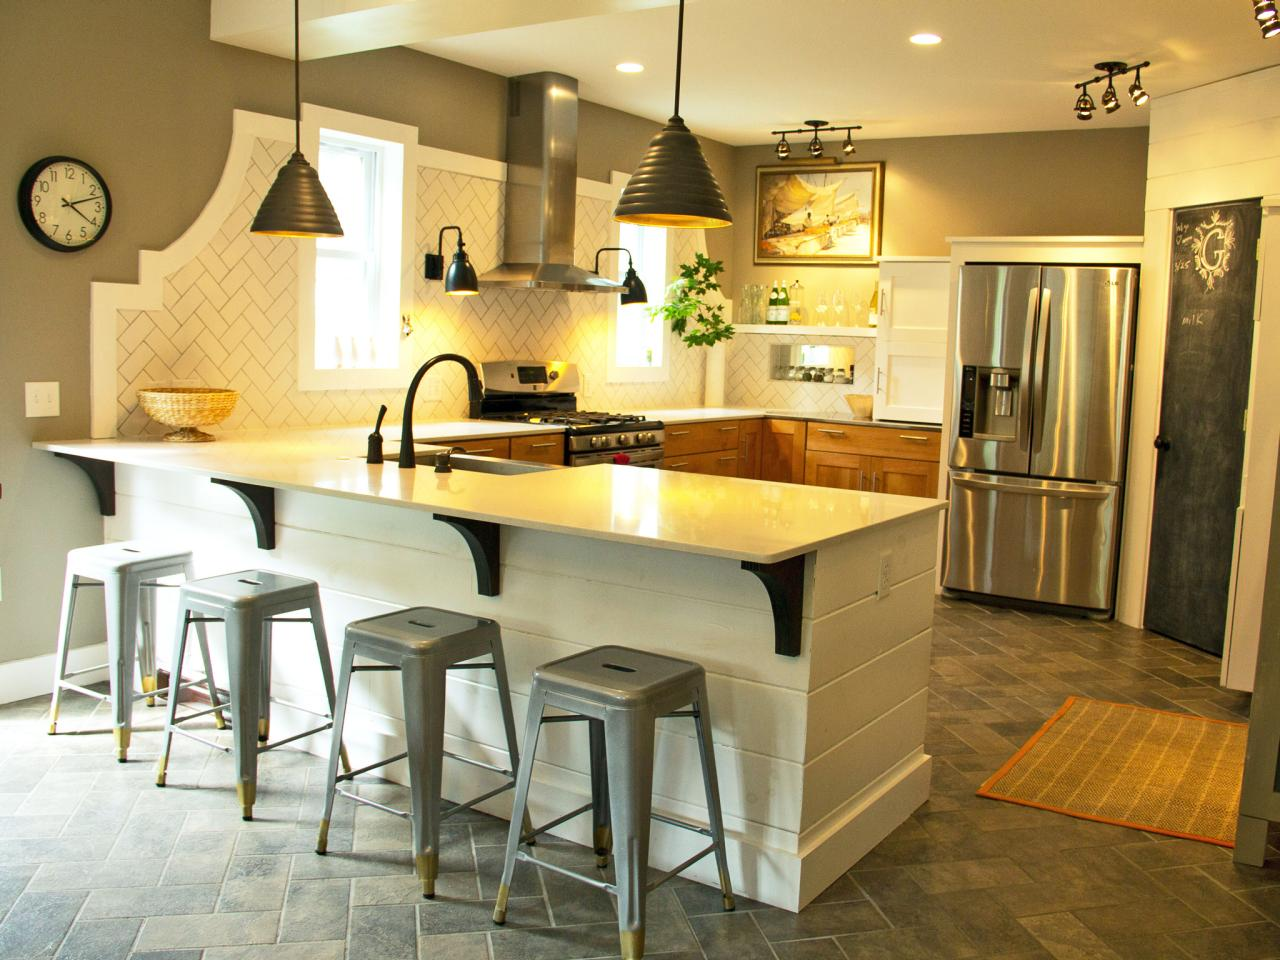 Photos hgtv for Kitchen ideas no island